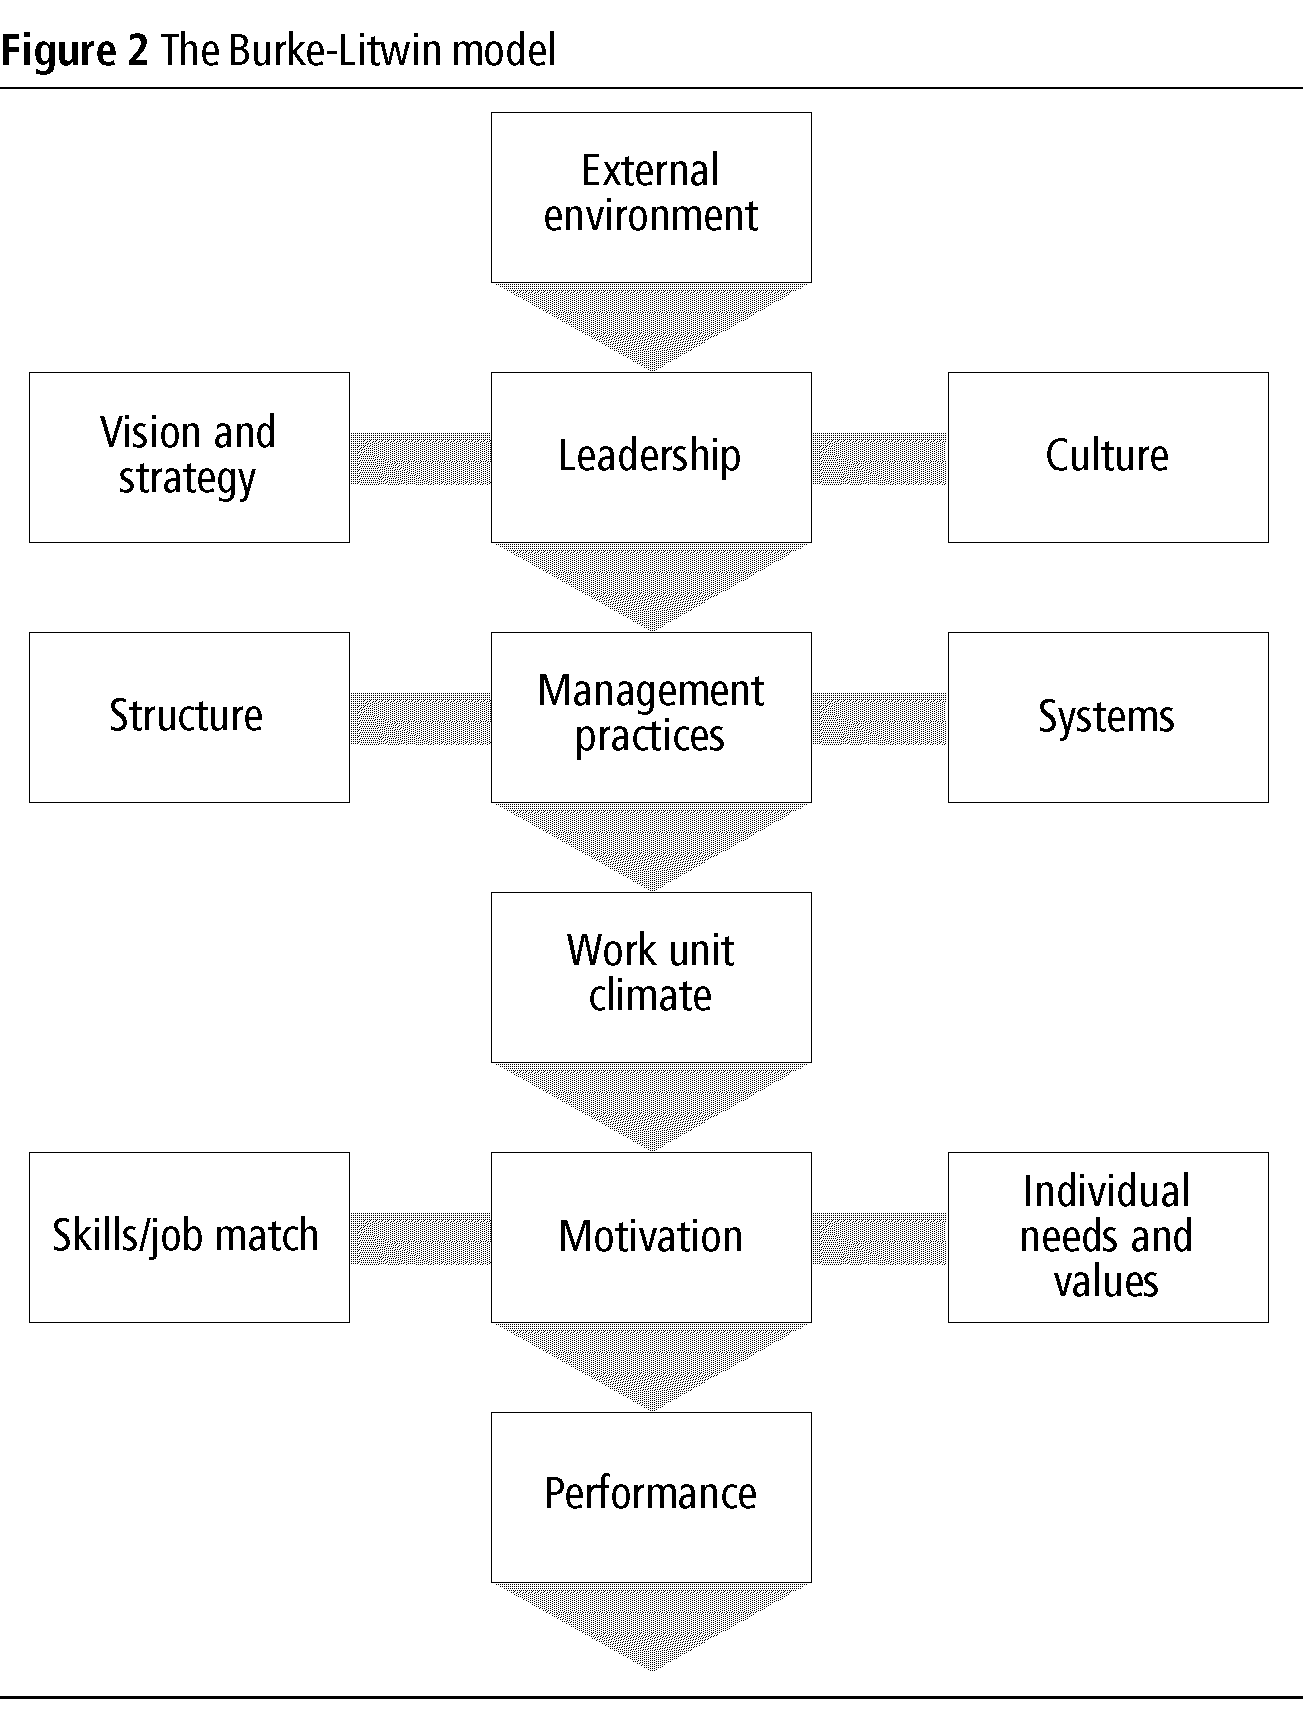 managing in organizations Diversity management is a process intended to create and maintain a positive work environment where the similarities and differences of individuals are valued the literature on diversity management has mostly emphasized on organization culture its impact on diversity openness human resource management practices institutional environments.